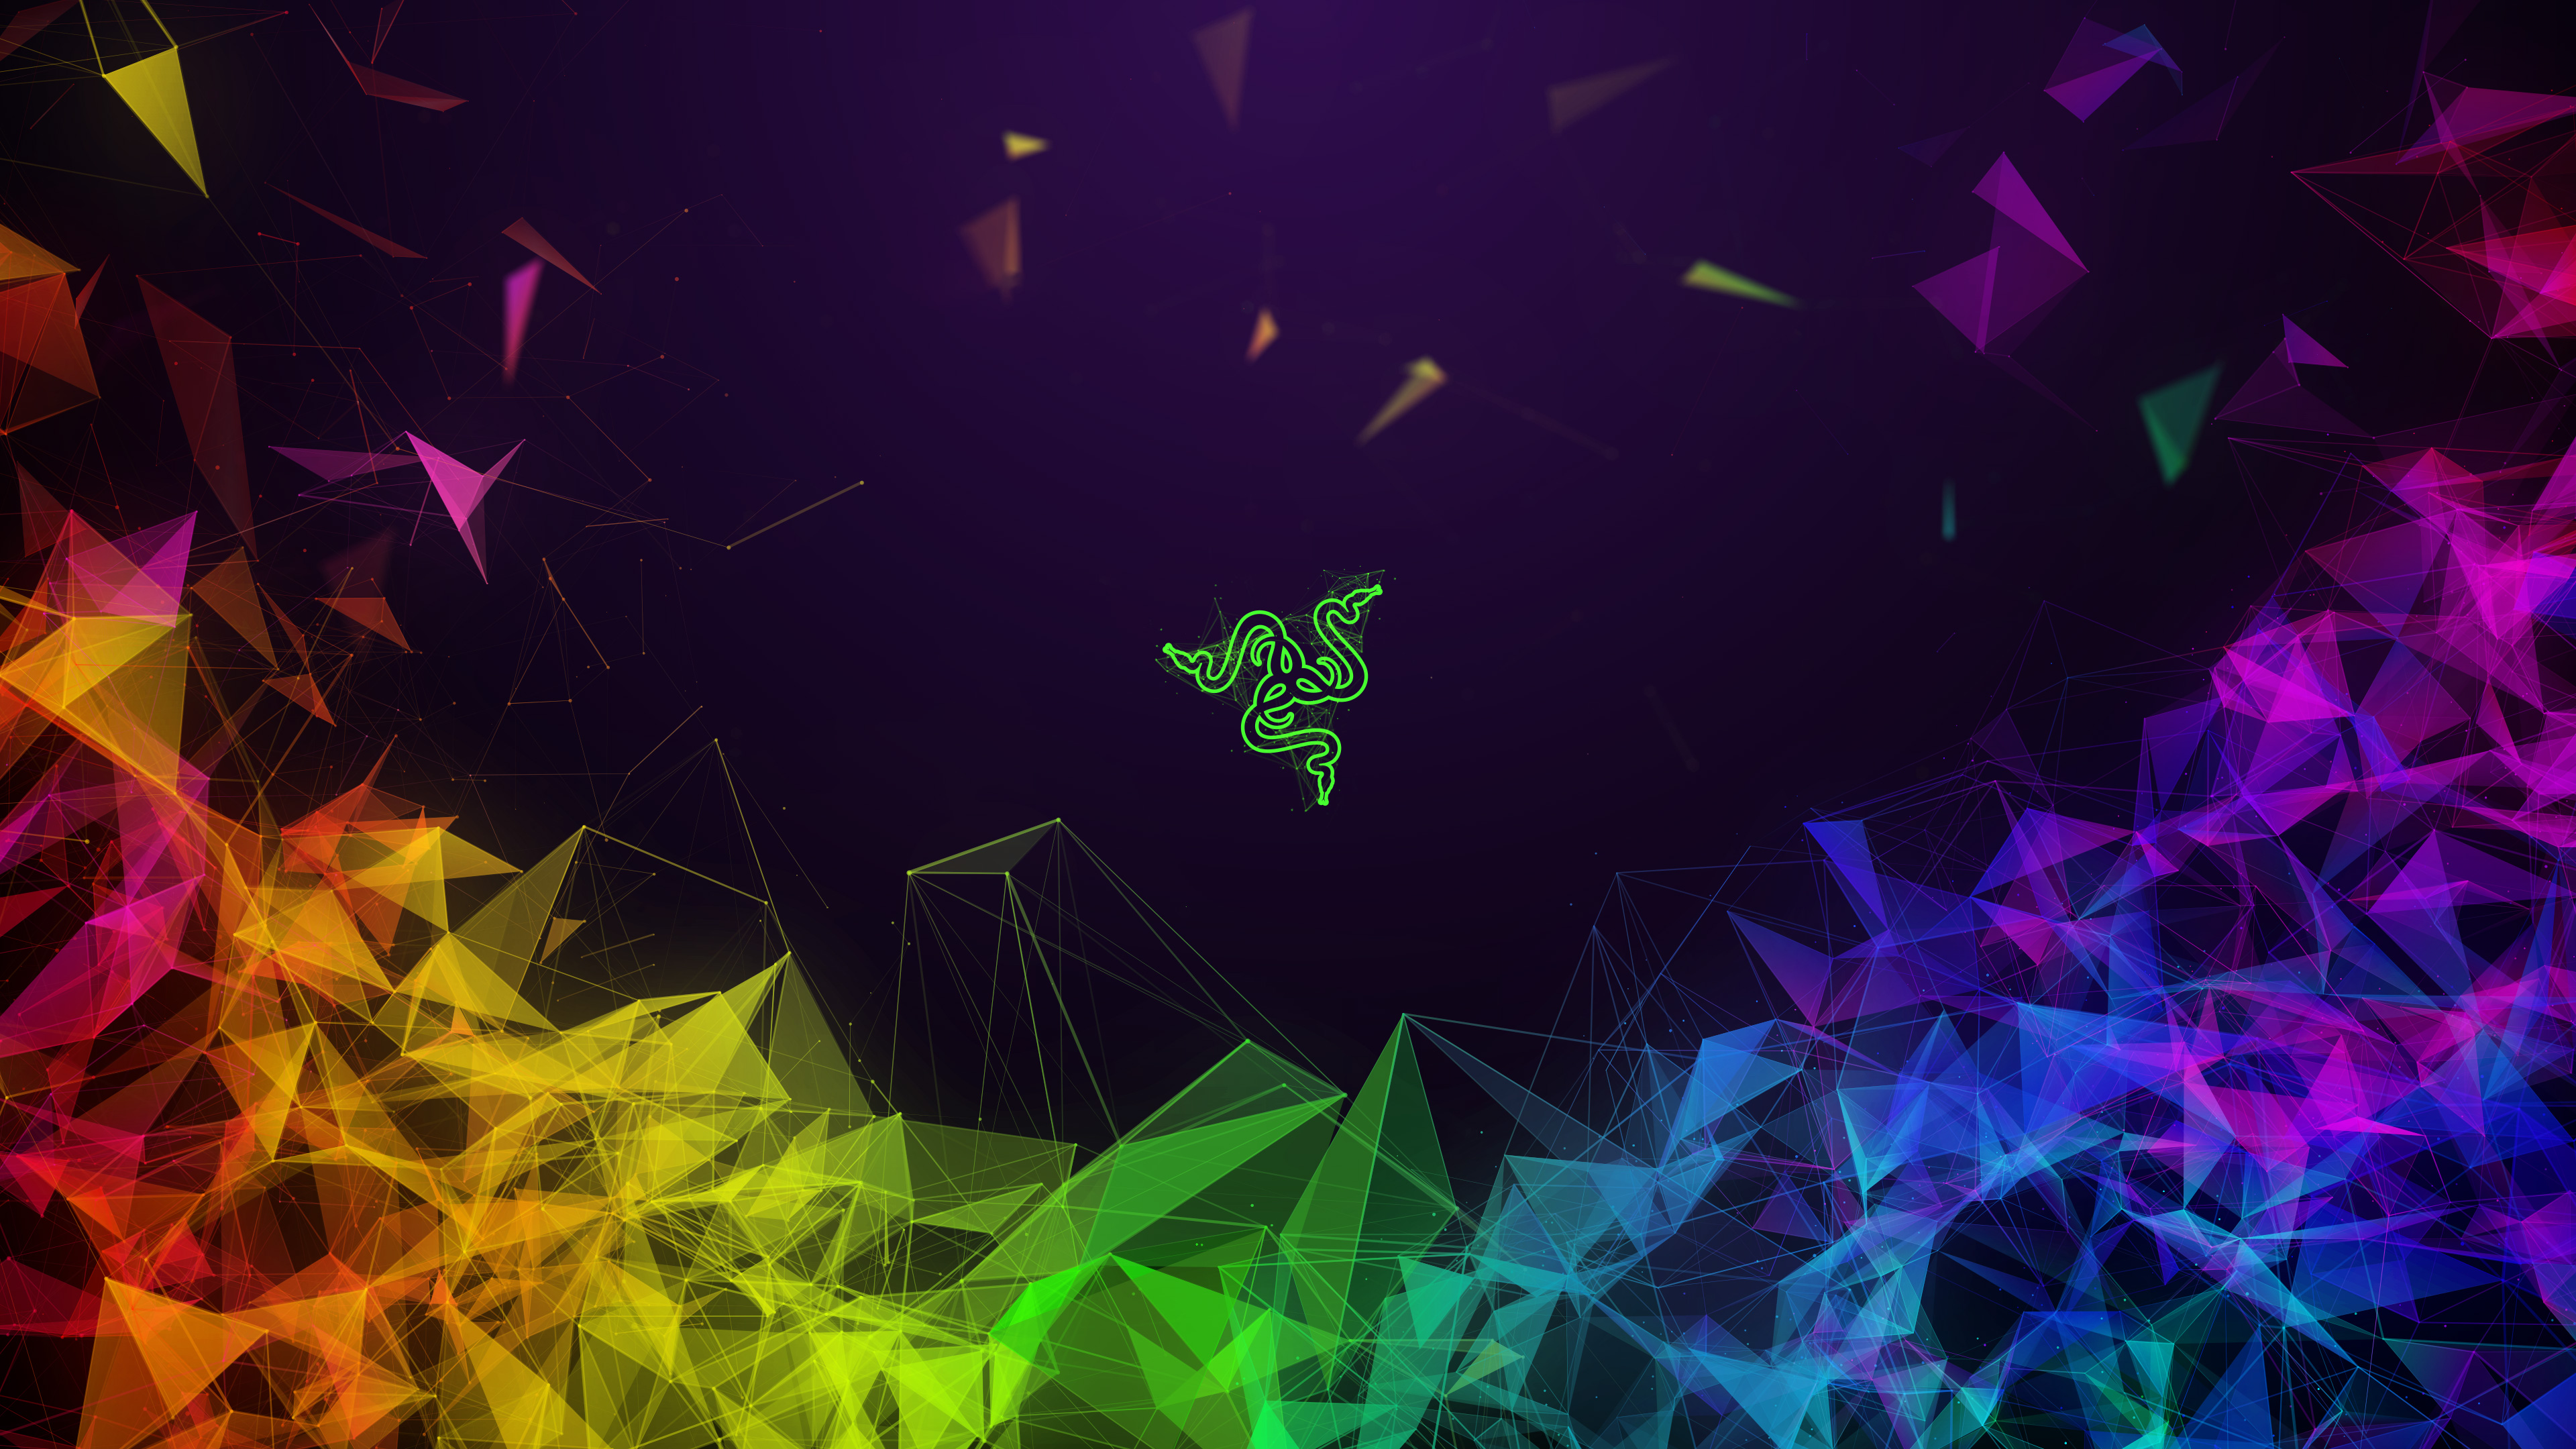 Razer Colorful Abstract 4k Hd Abstract 4k Wallpapers Images Backgrounds Photos And Pictures